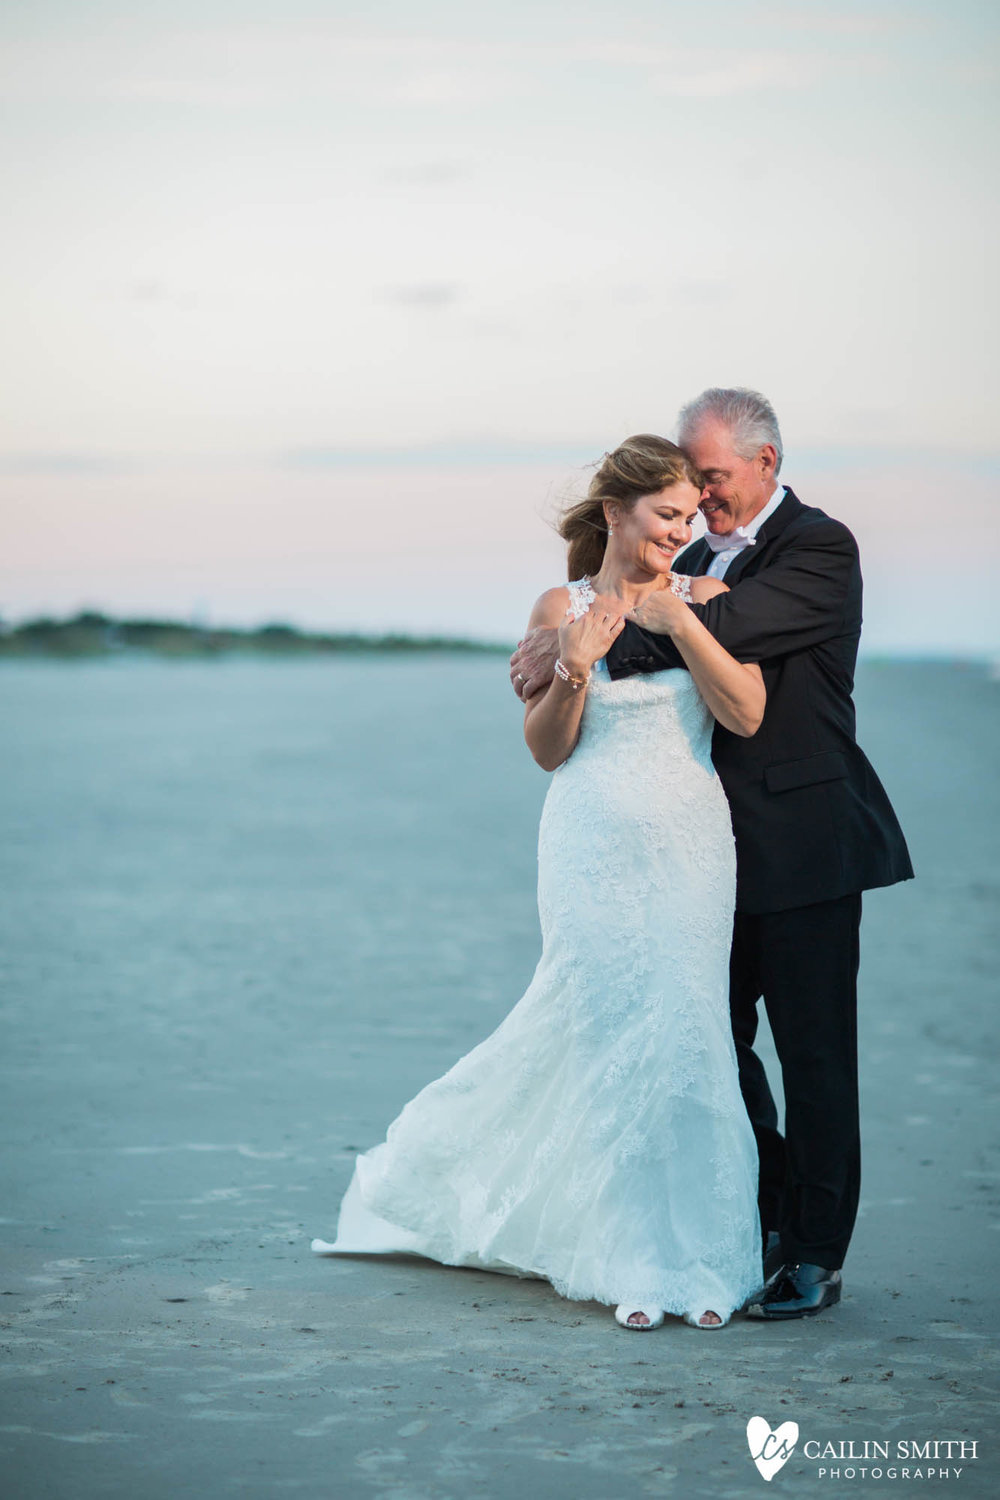 Kalina_Andy_Jekyll_Island_Westin_Hotel_Wedding_Photography_0060.jpg